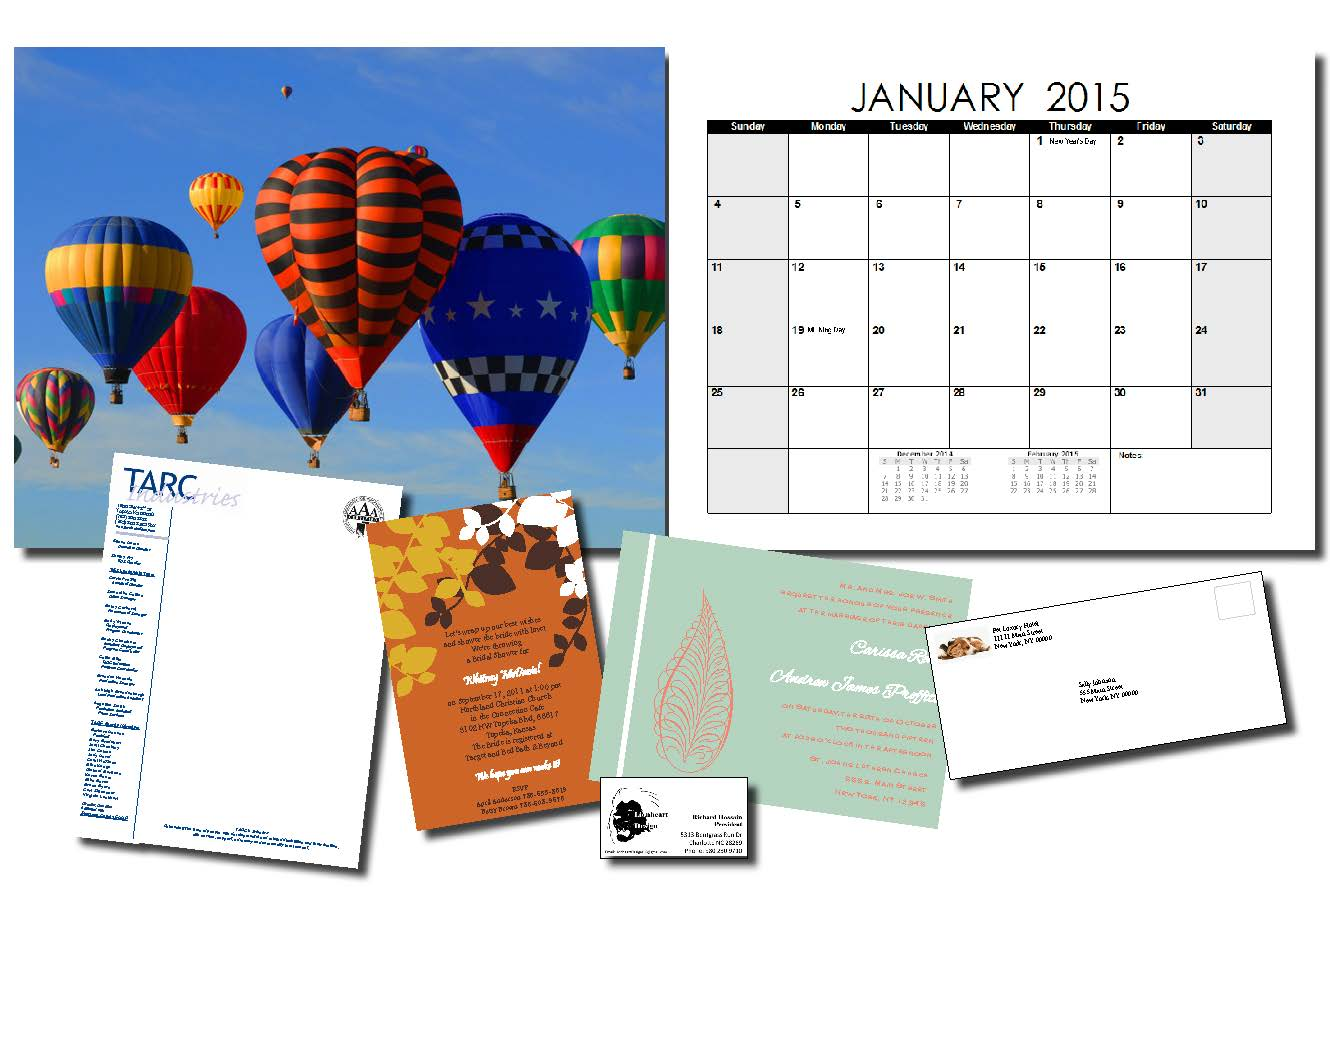 Affordable, High Quality Printing Solutions we can print calendars, letter head, wedding invitations, brochures and more!